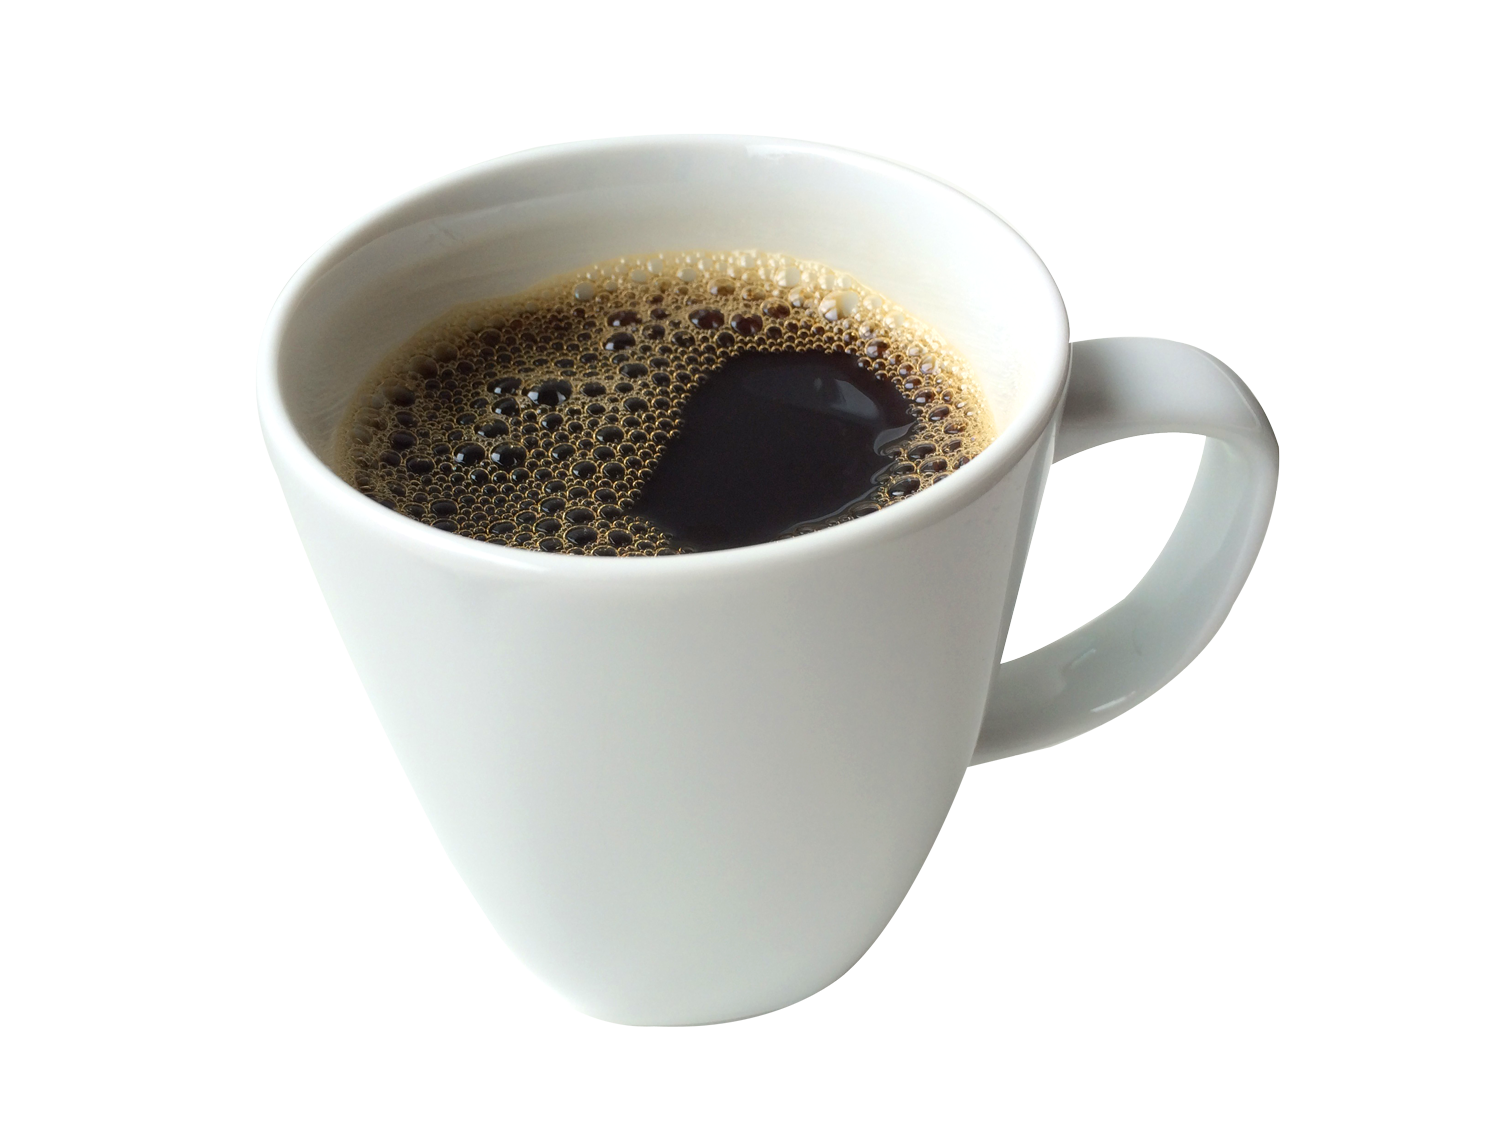 Coffee Cup Png Clipart - Coffee, Transparent background PNG HD thumbnail